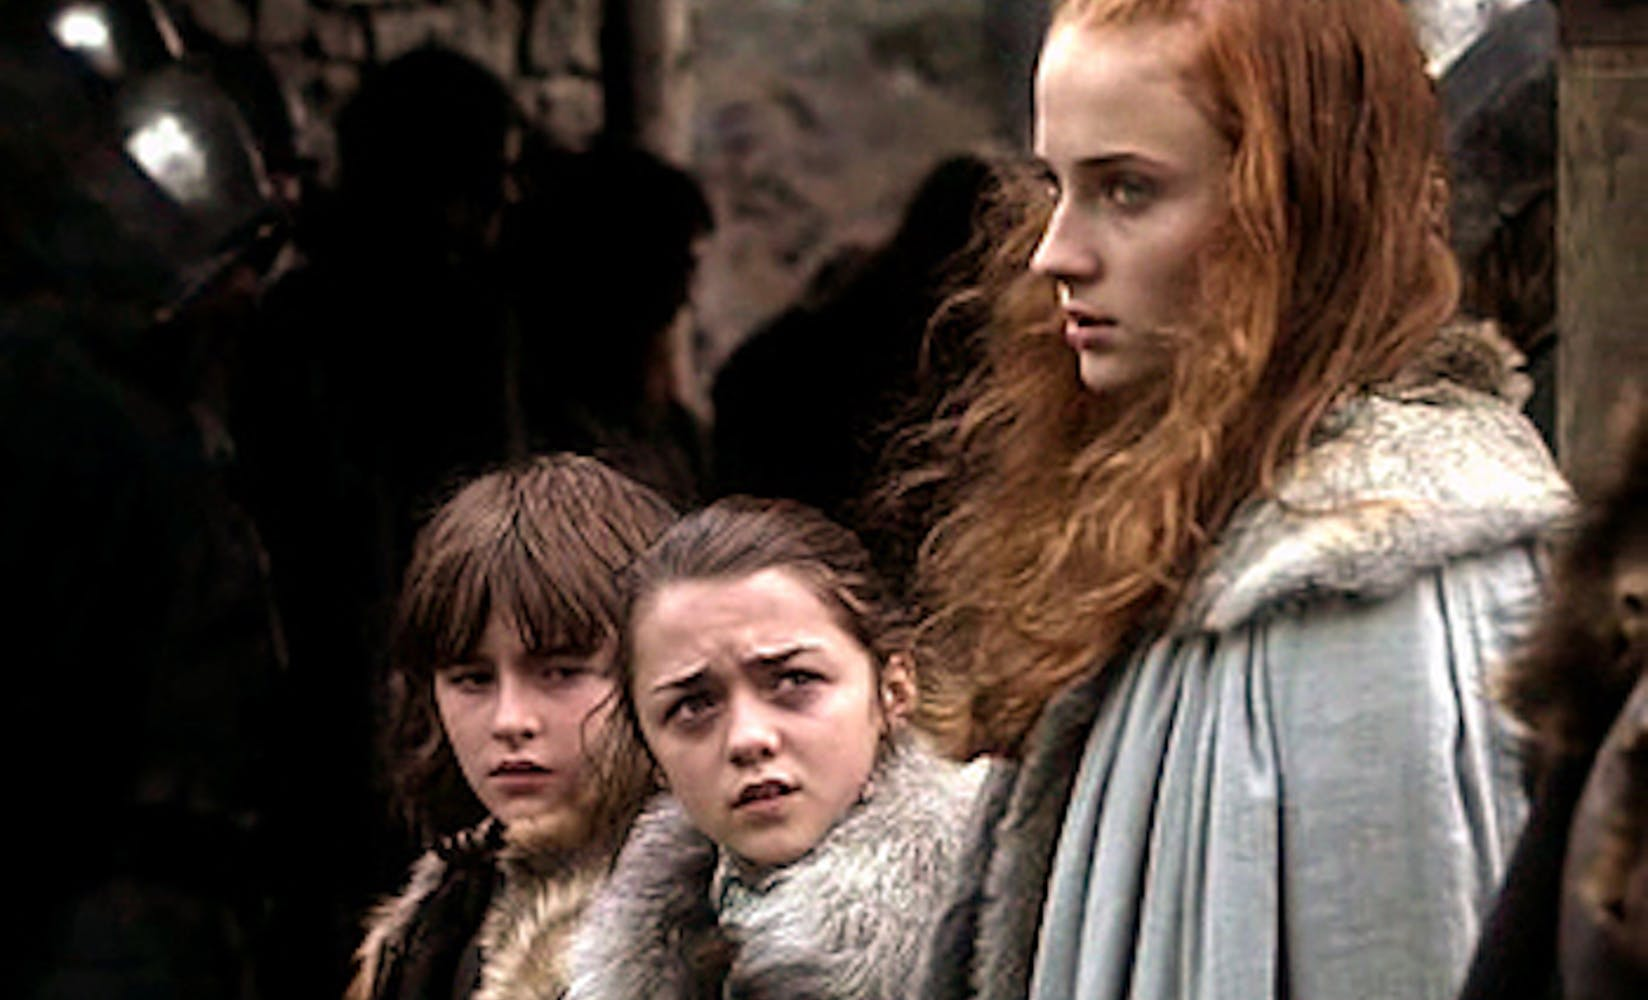 The stark children rap the game of thrones intro 1 22207 1357759455 8 big